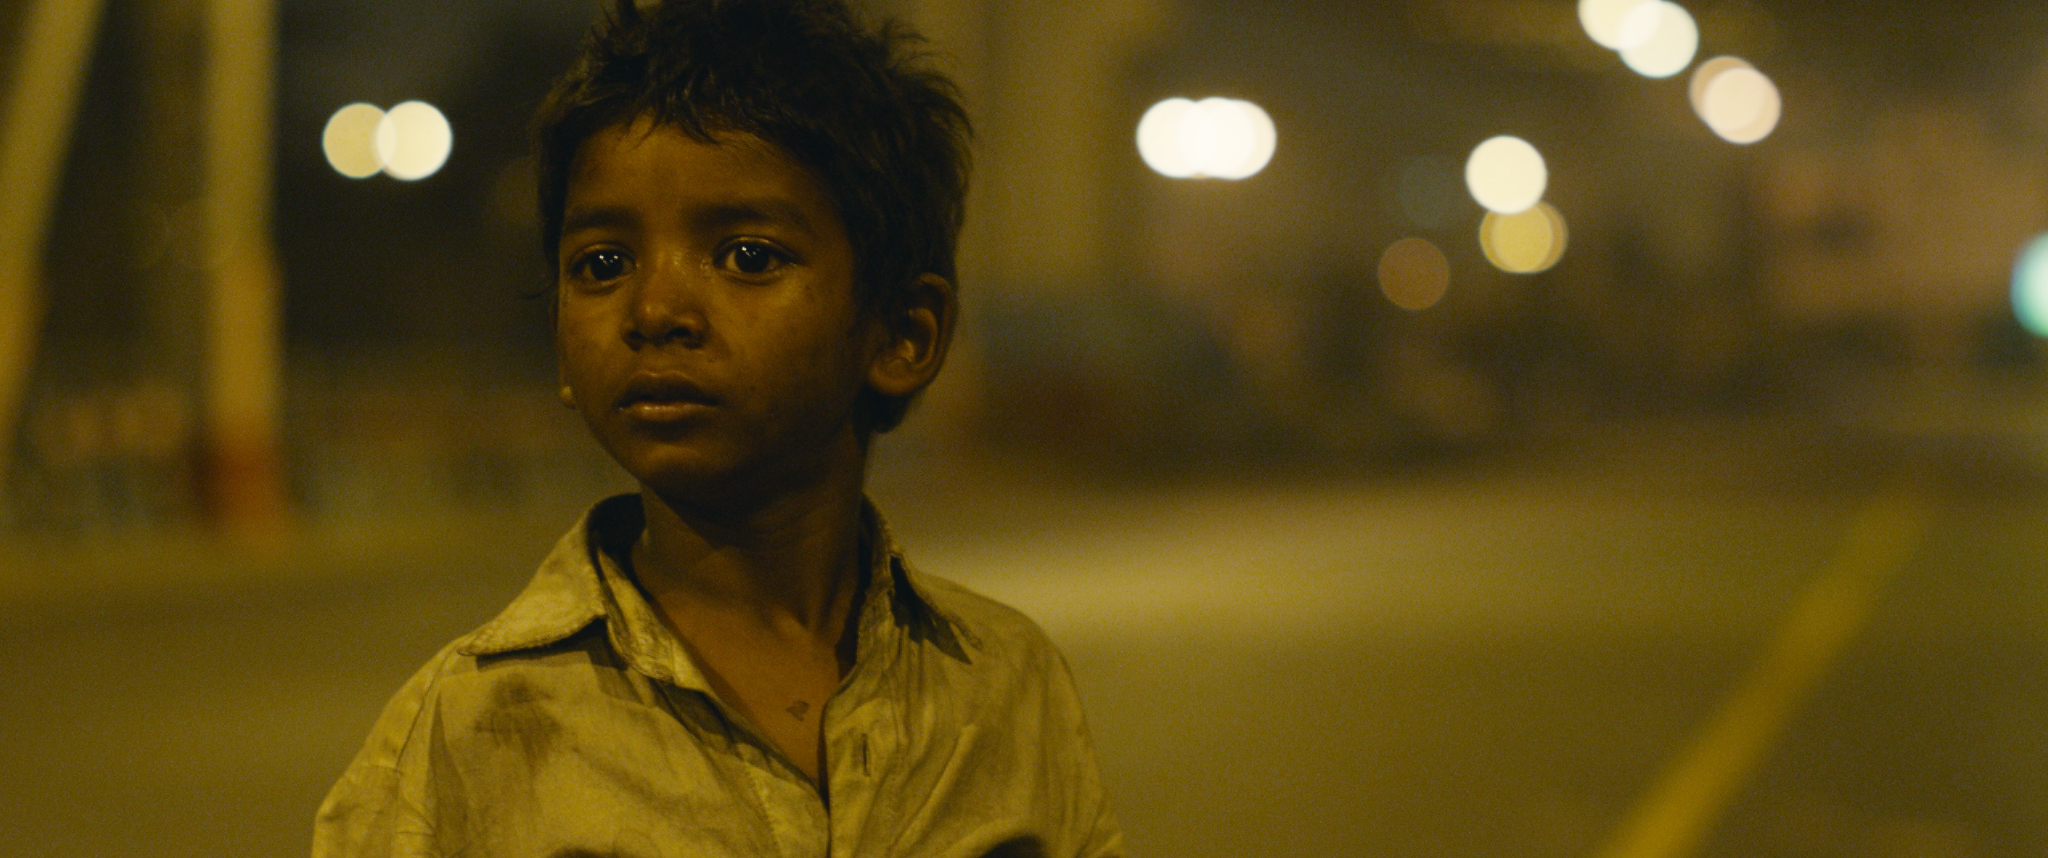 Sunny Pawar stars in LIONPhoto: Courtesy of The Weinstein Company